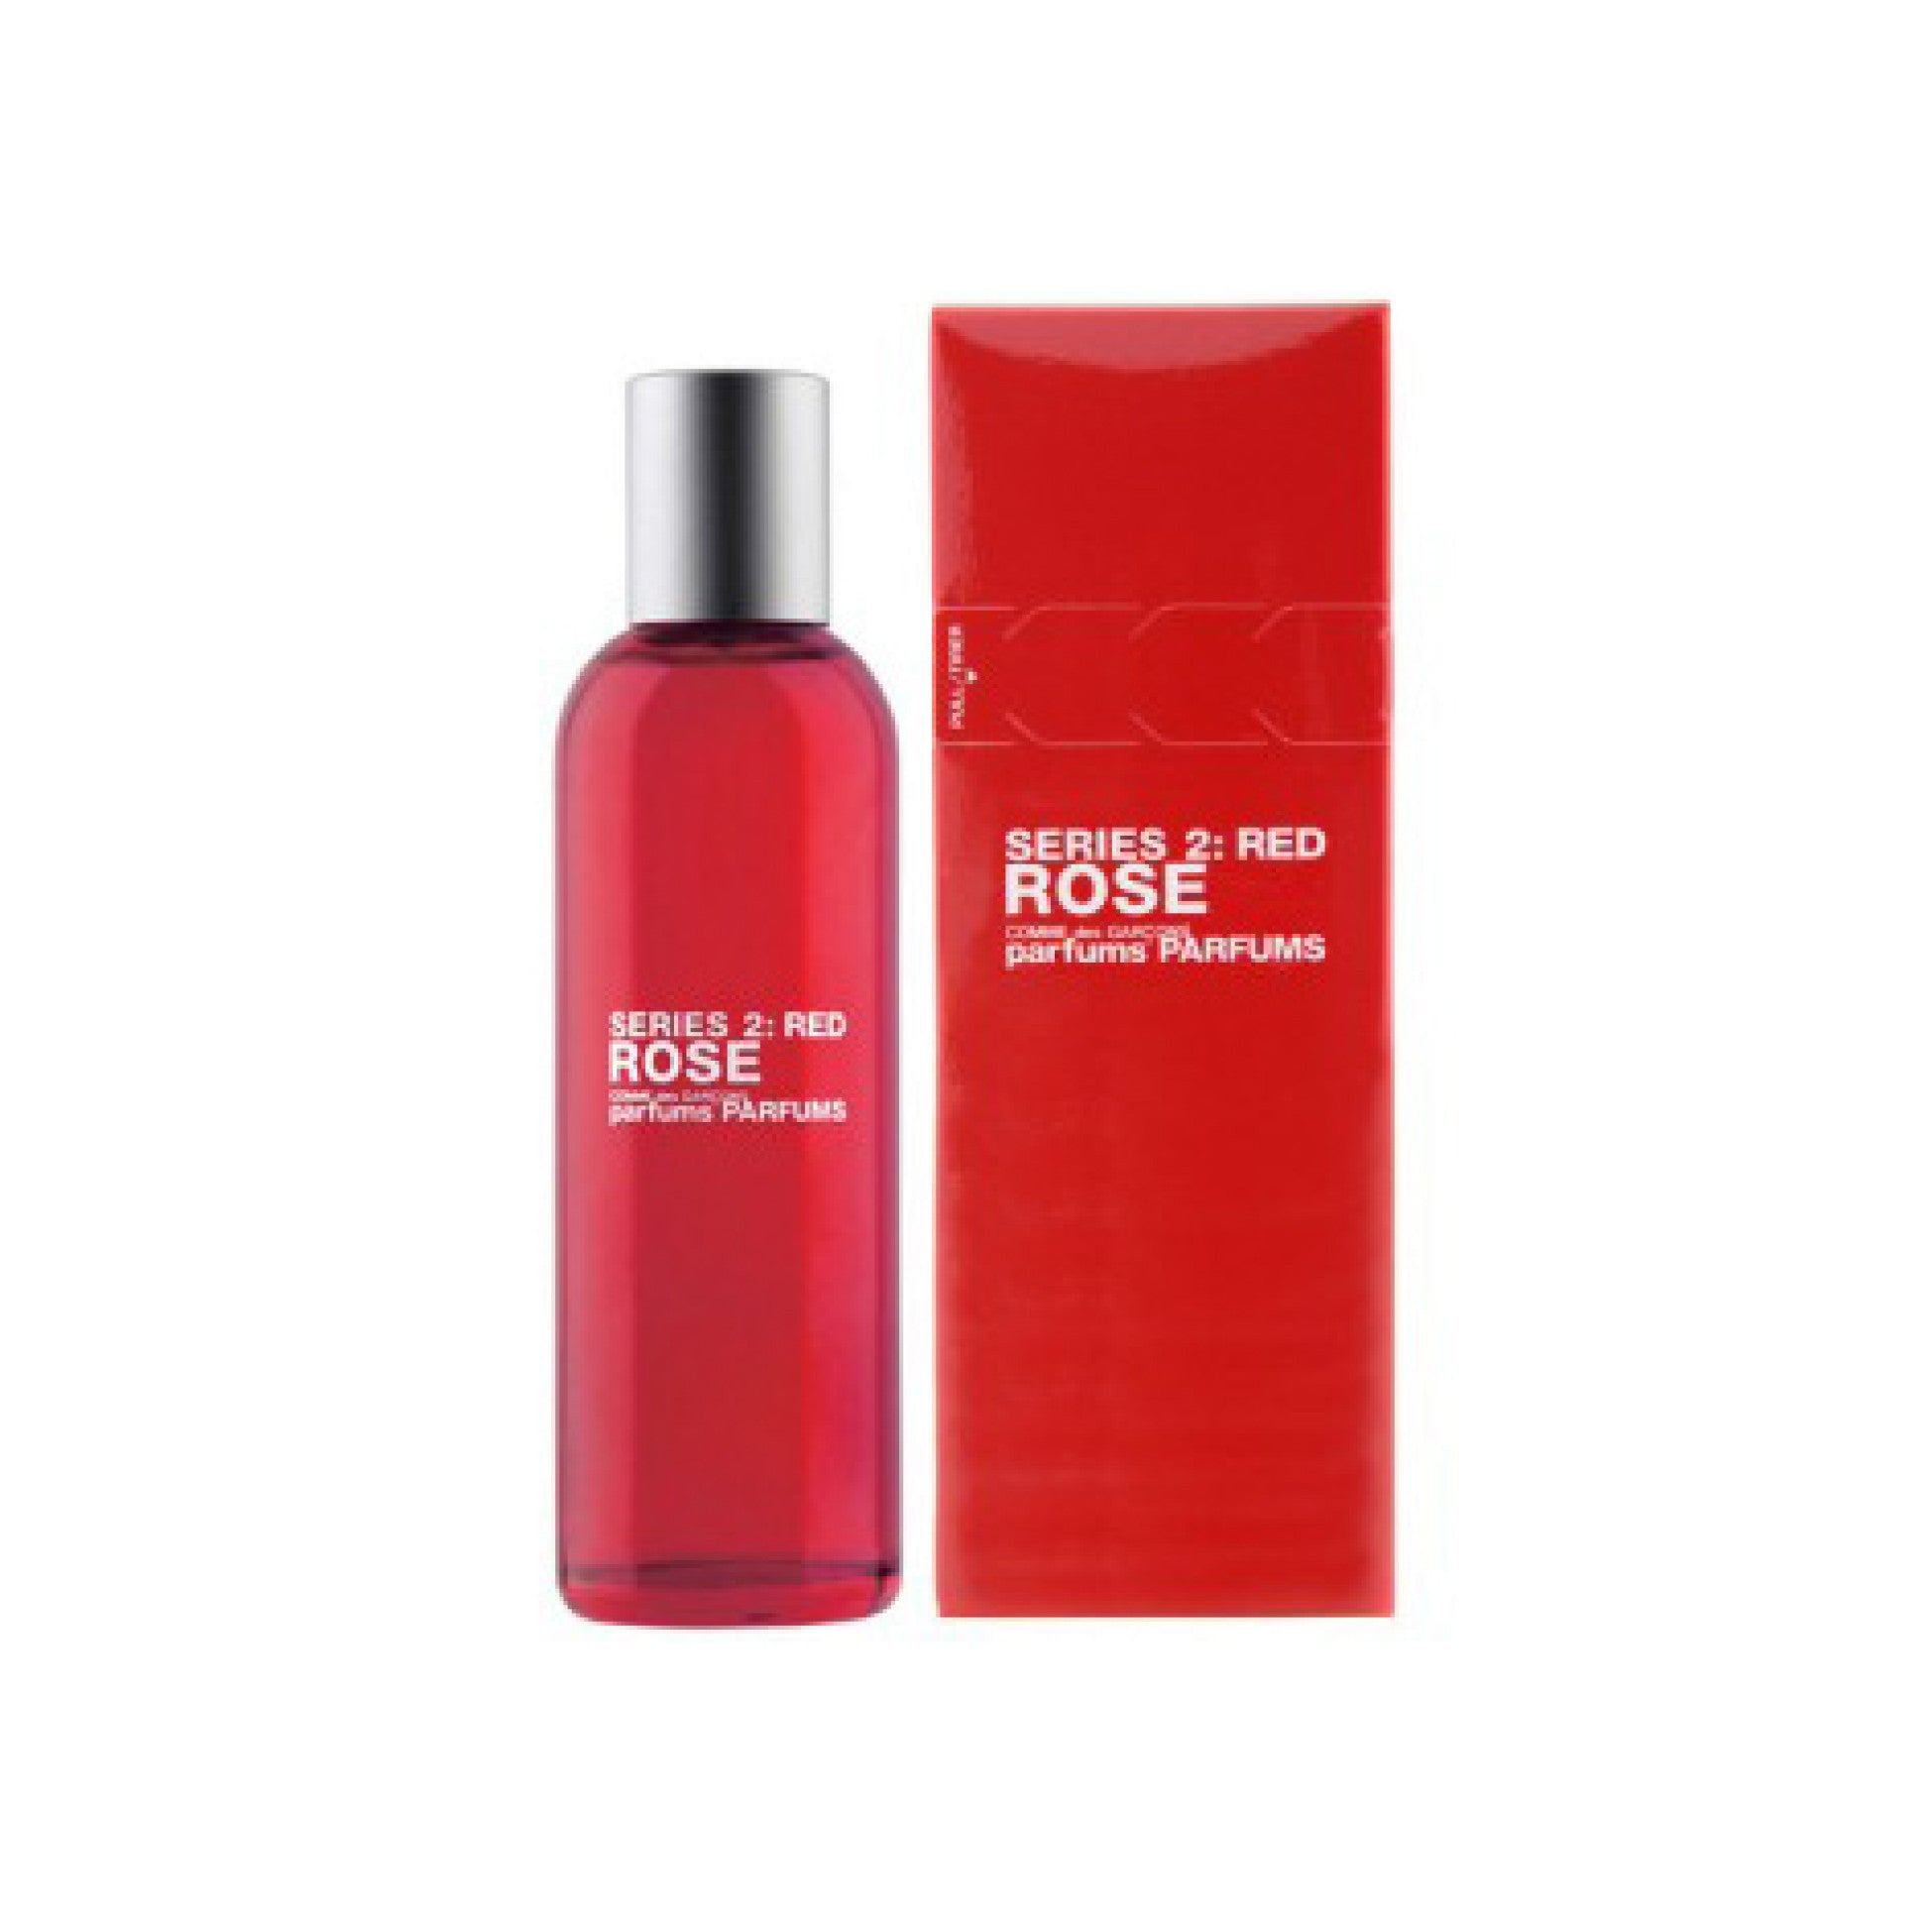 RED Rose - Eau de Toilette